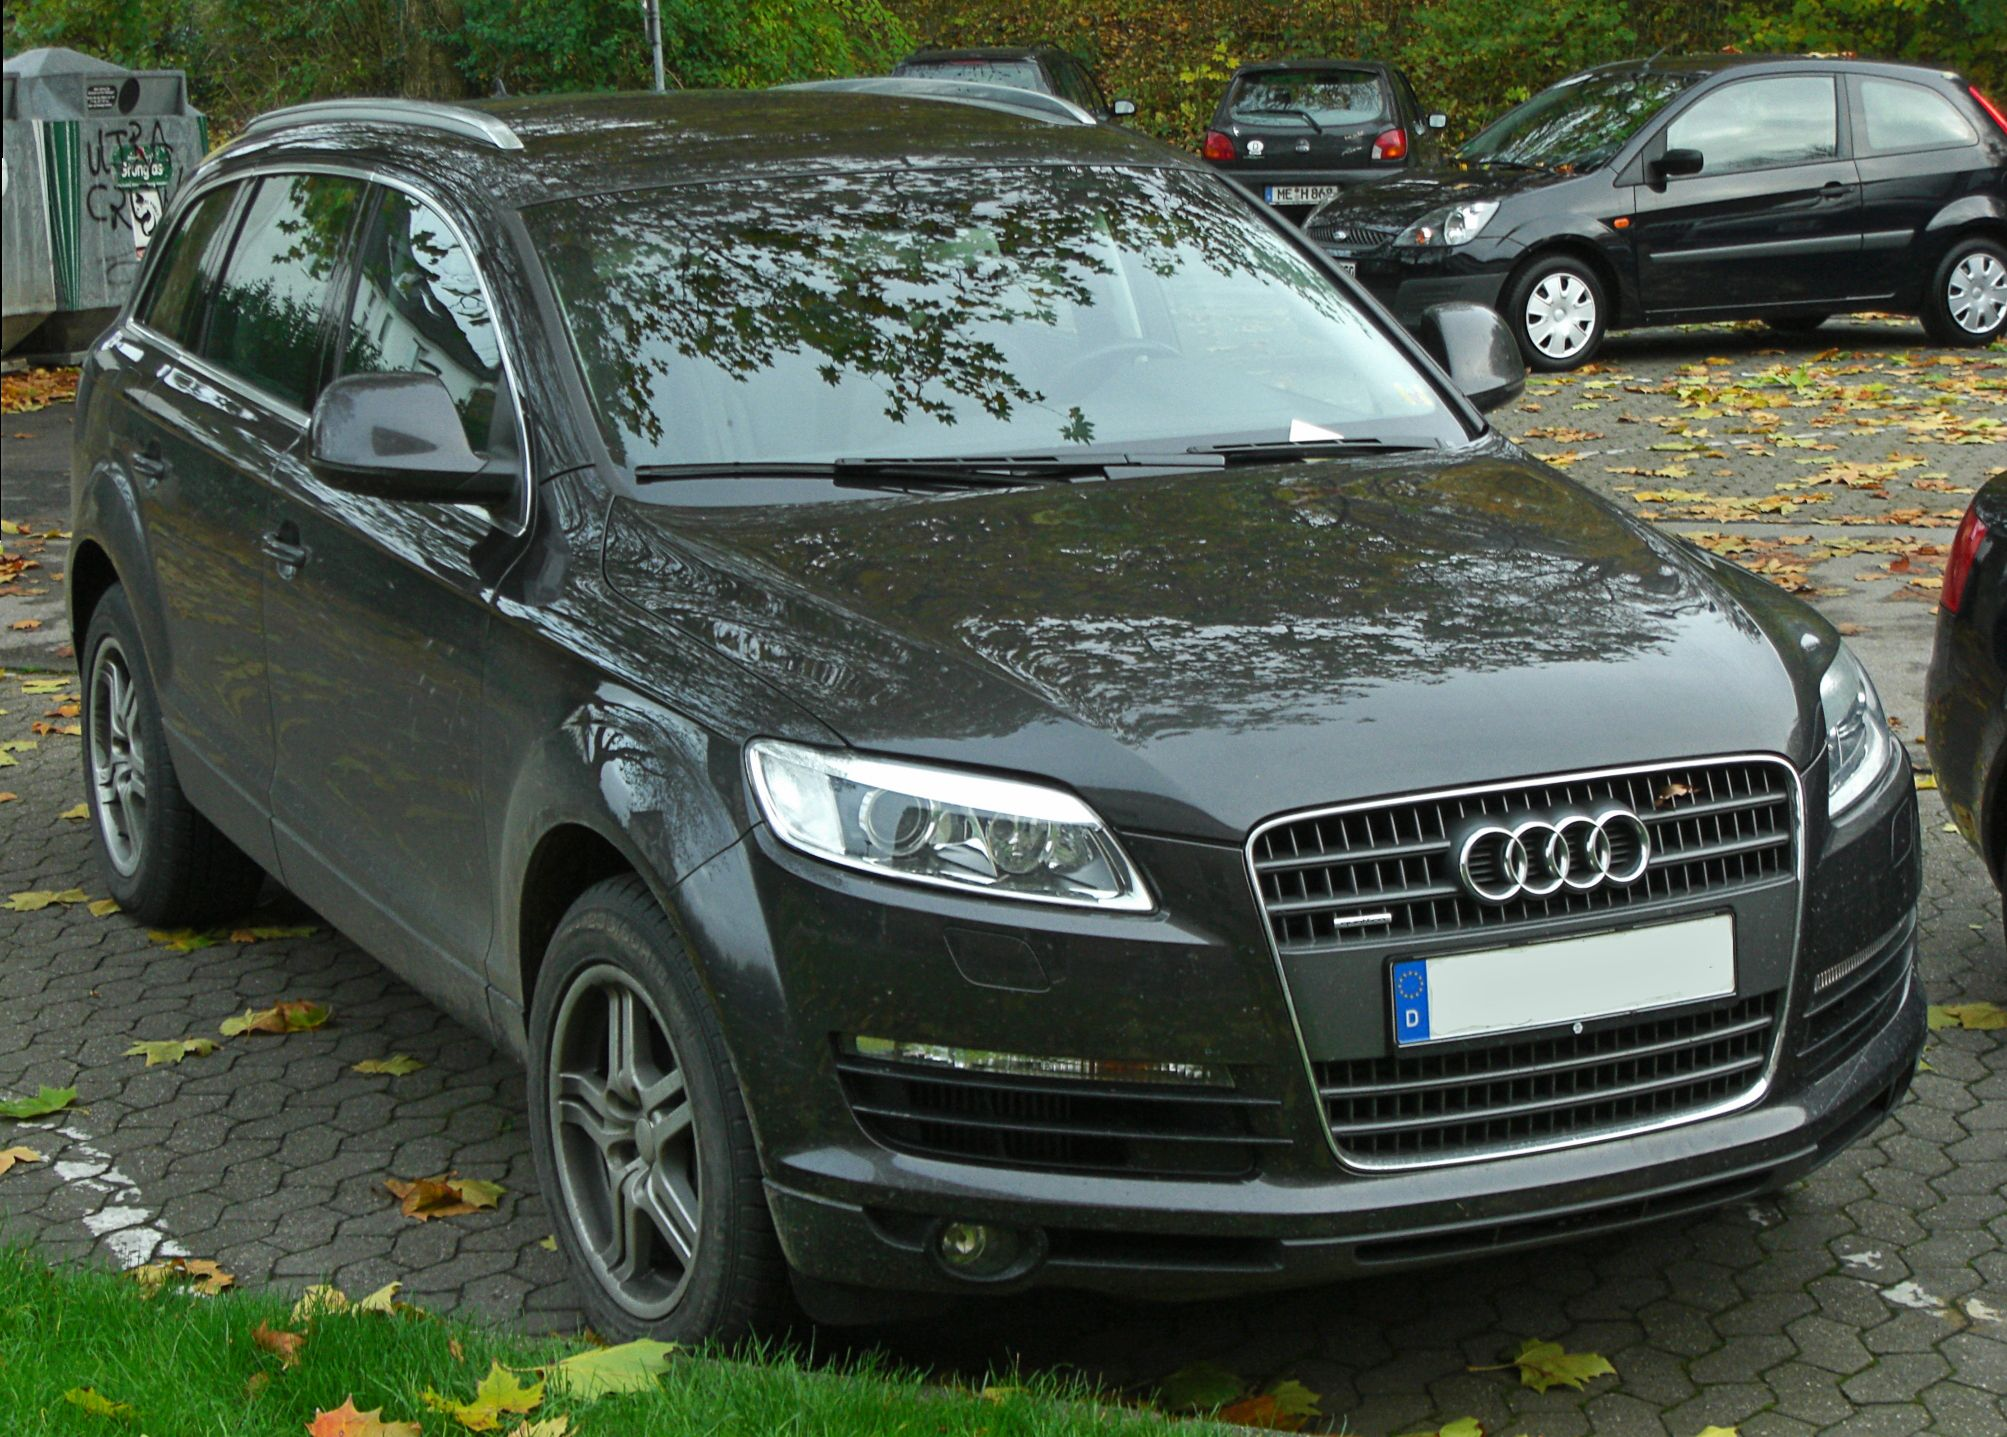 2008 Audi Q7 - 2008 Audi Q7 Prices Reviews and Pictures | U.S. News ...